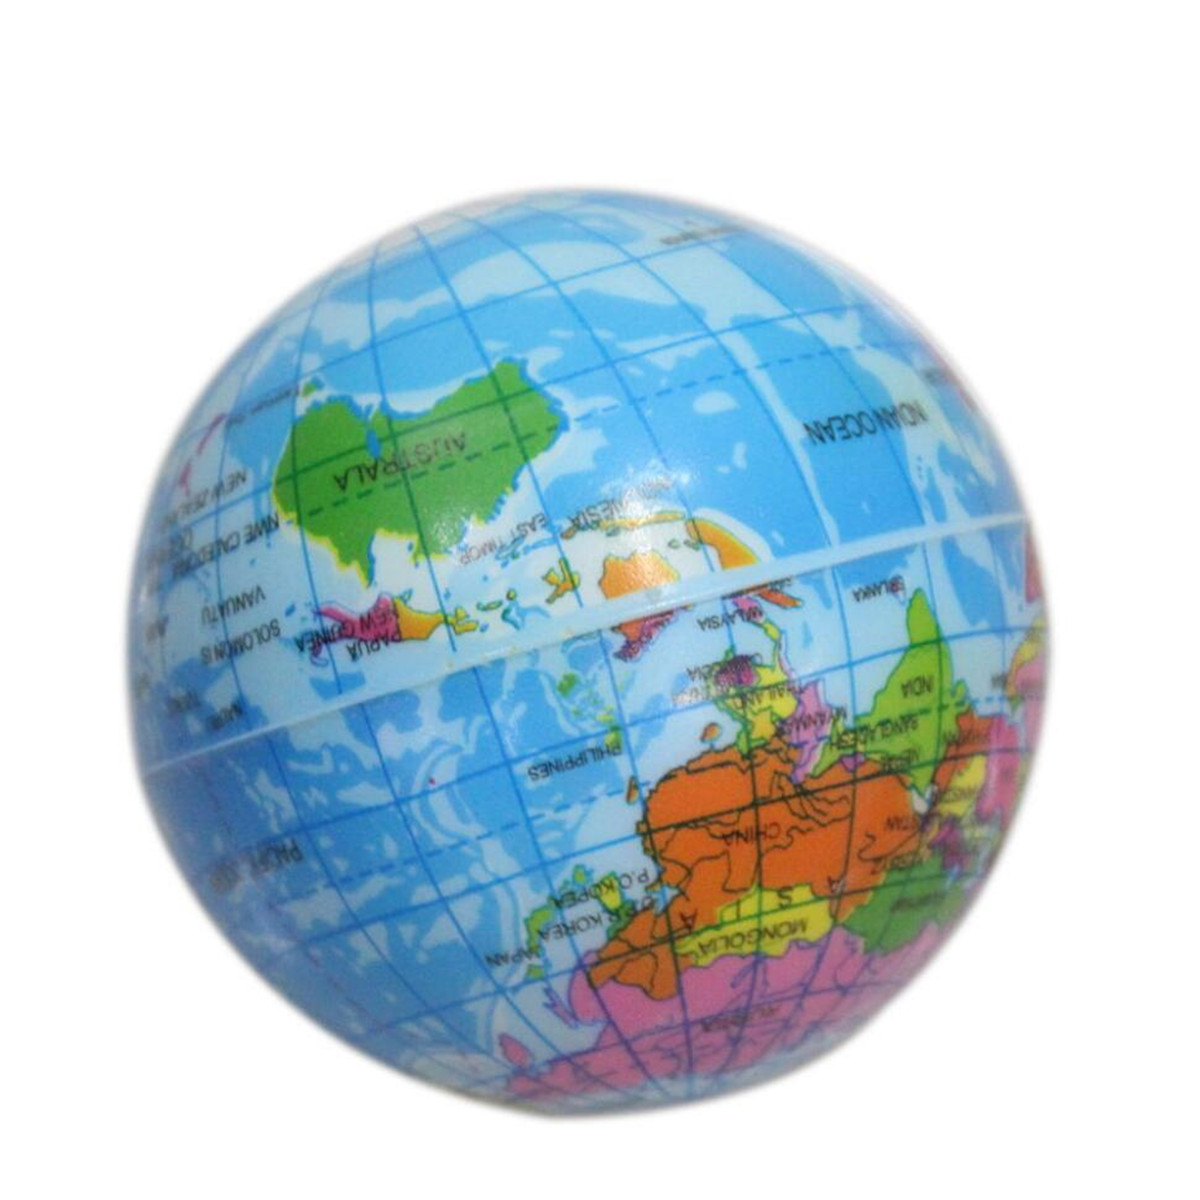 1pc mini funny world map pu earth globe stress bouncy ball geography 1pc mini funny world map pu earth globe stress bouncy ball geography toy 2 sizes gumiabroncs Choice Image